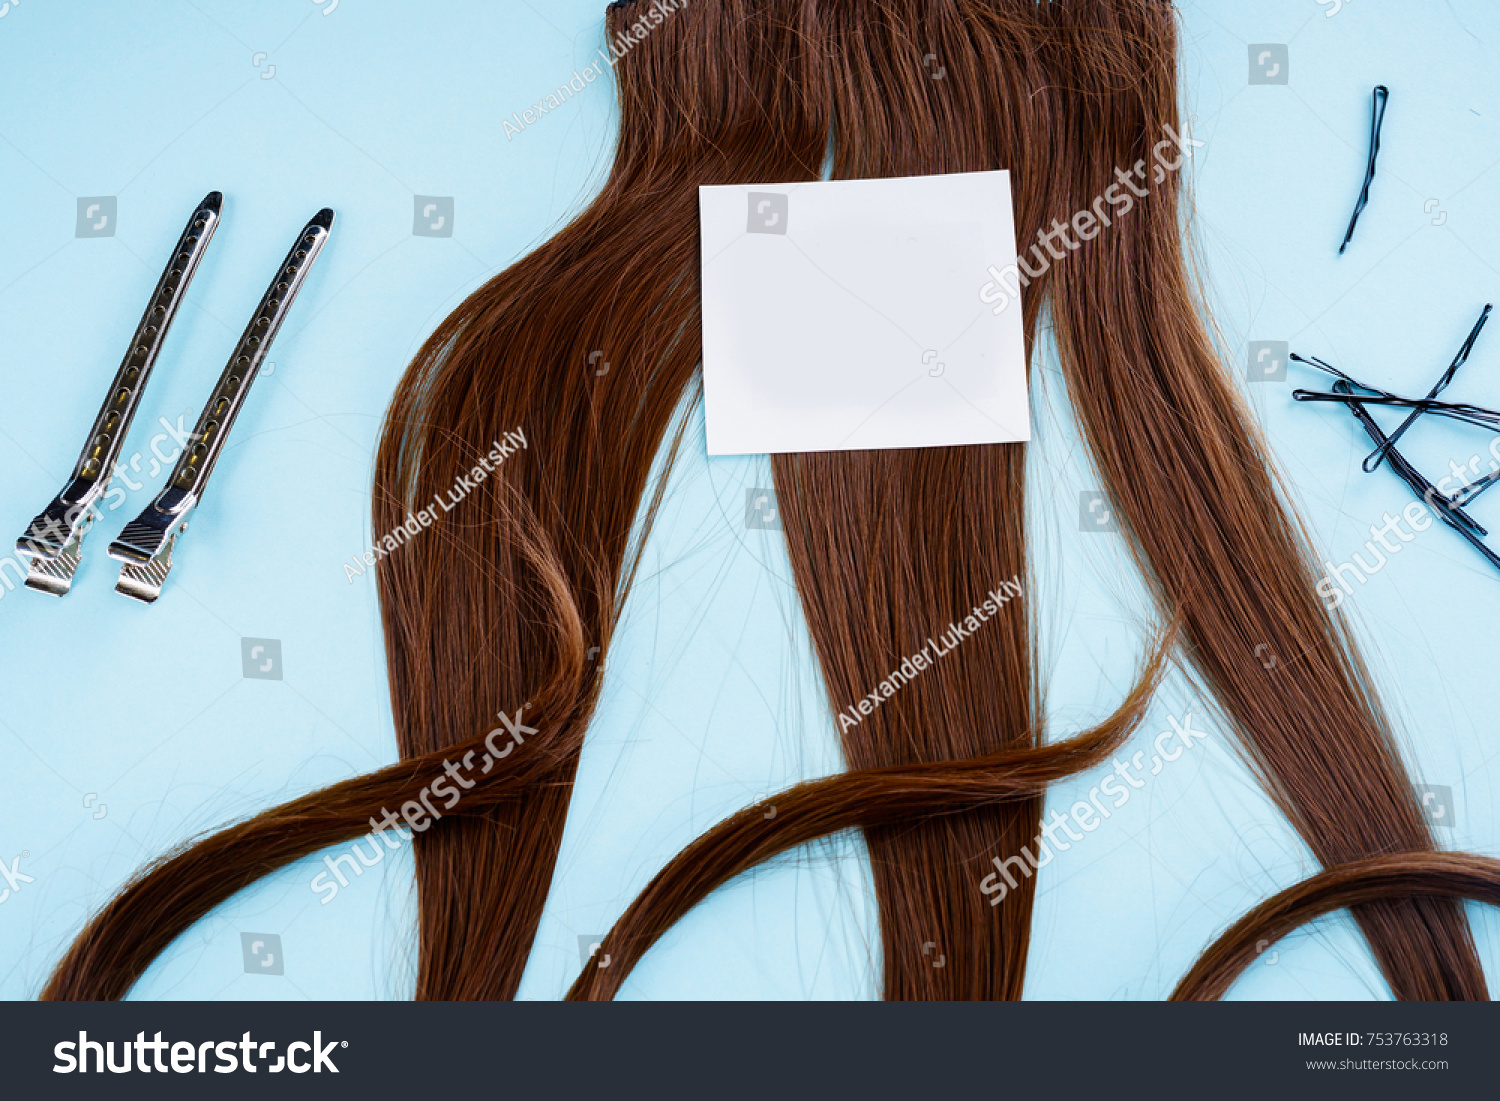 Hairdresser Accessories Coloring Hair Stock Photo 753763318 ...